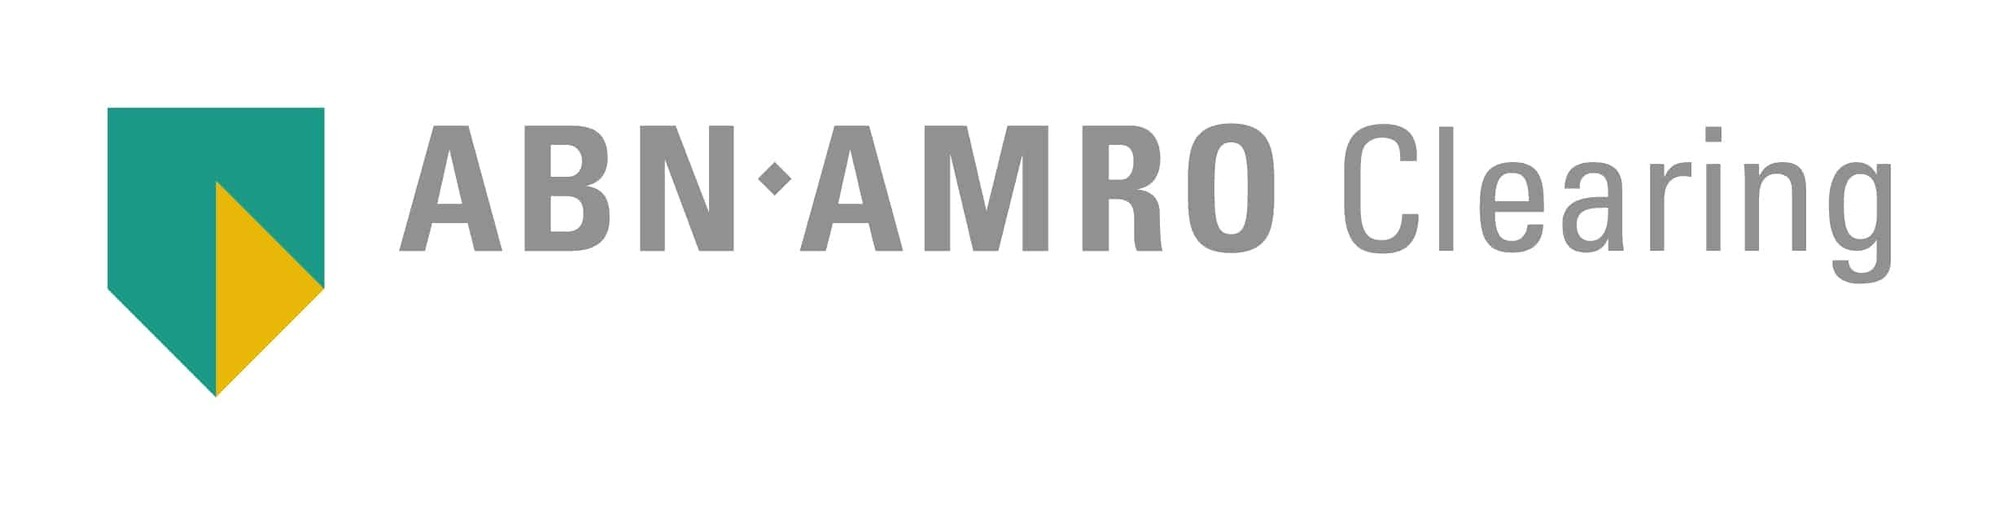 Logo for ABN AMRO Clearing